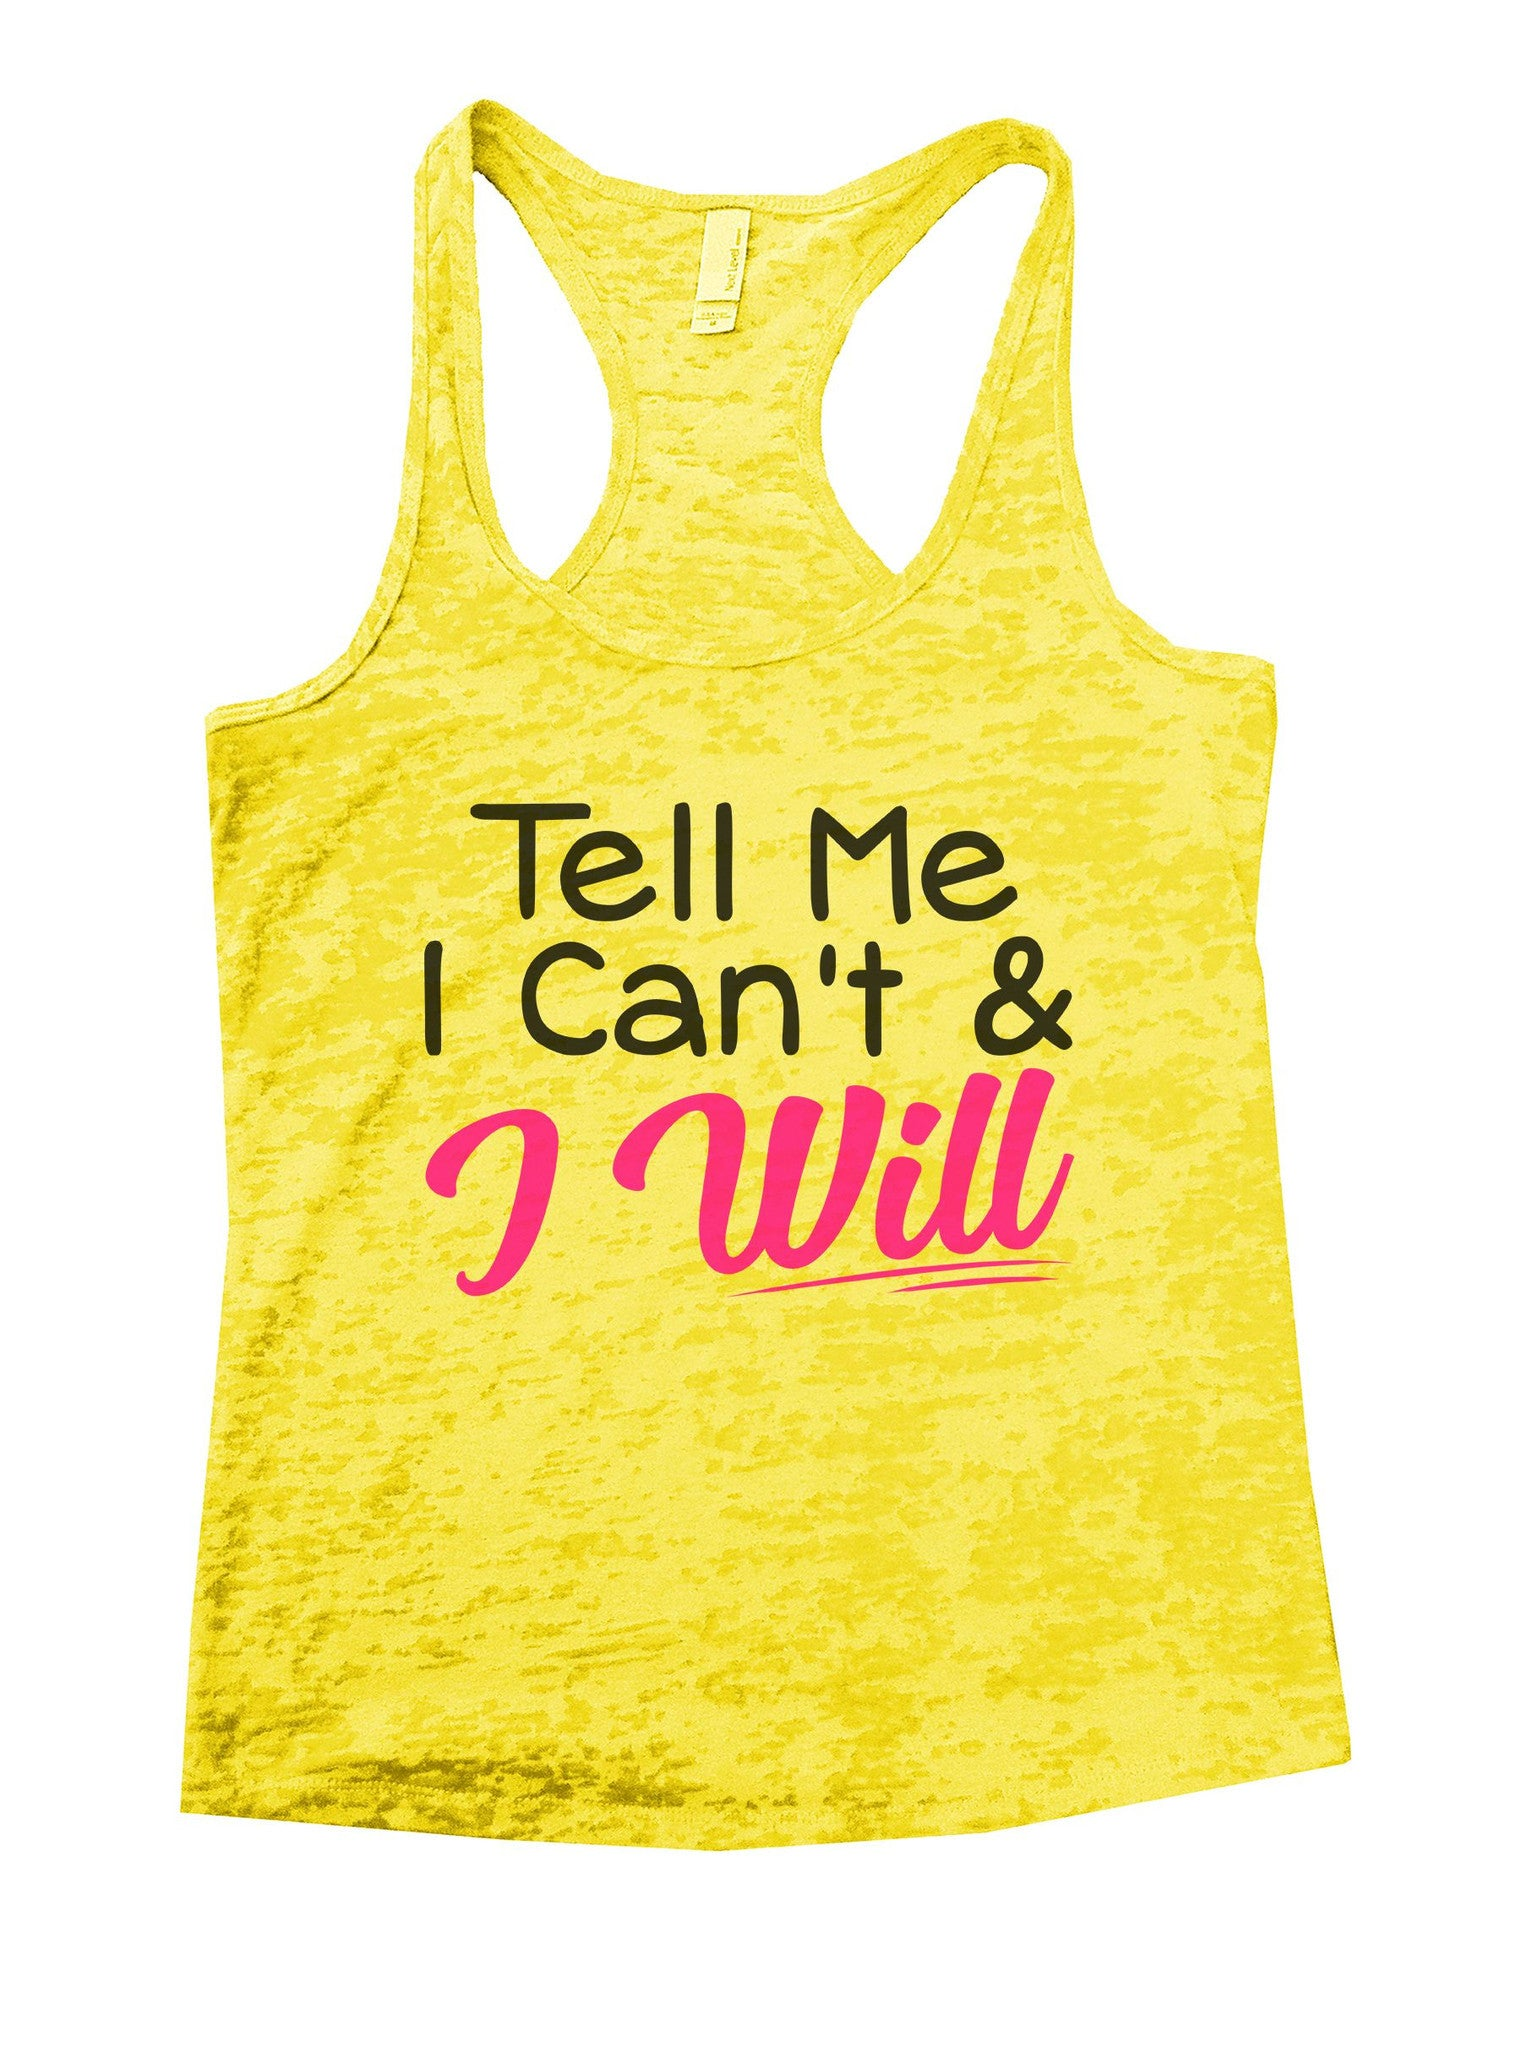 Tell Me I Can't & I Will Burnout Tank Top By BurnoutTankTops.com - 1071 - Funny Shirts Tank Tops Burnouts and Triblends  - 7